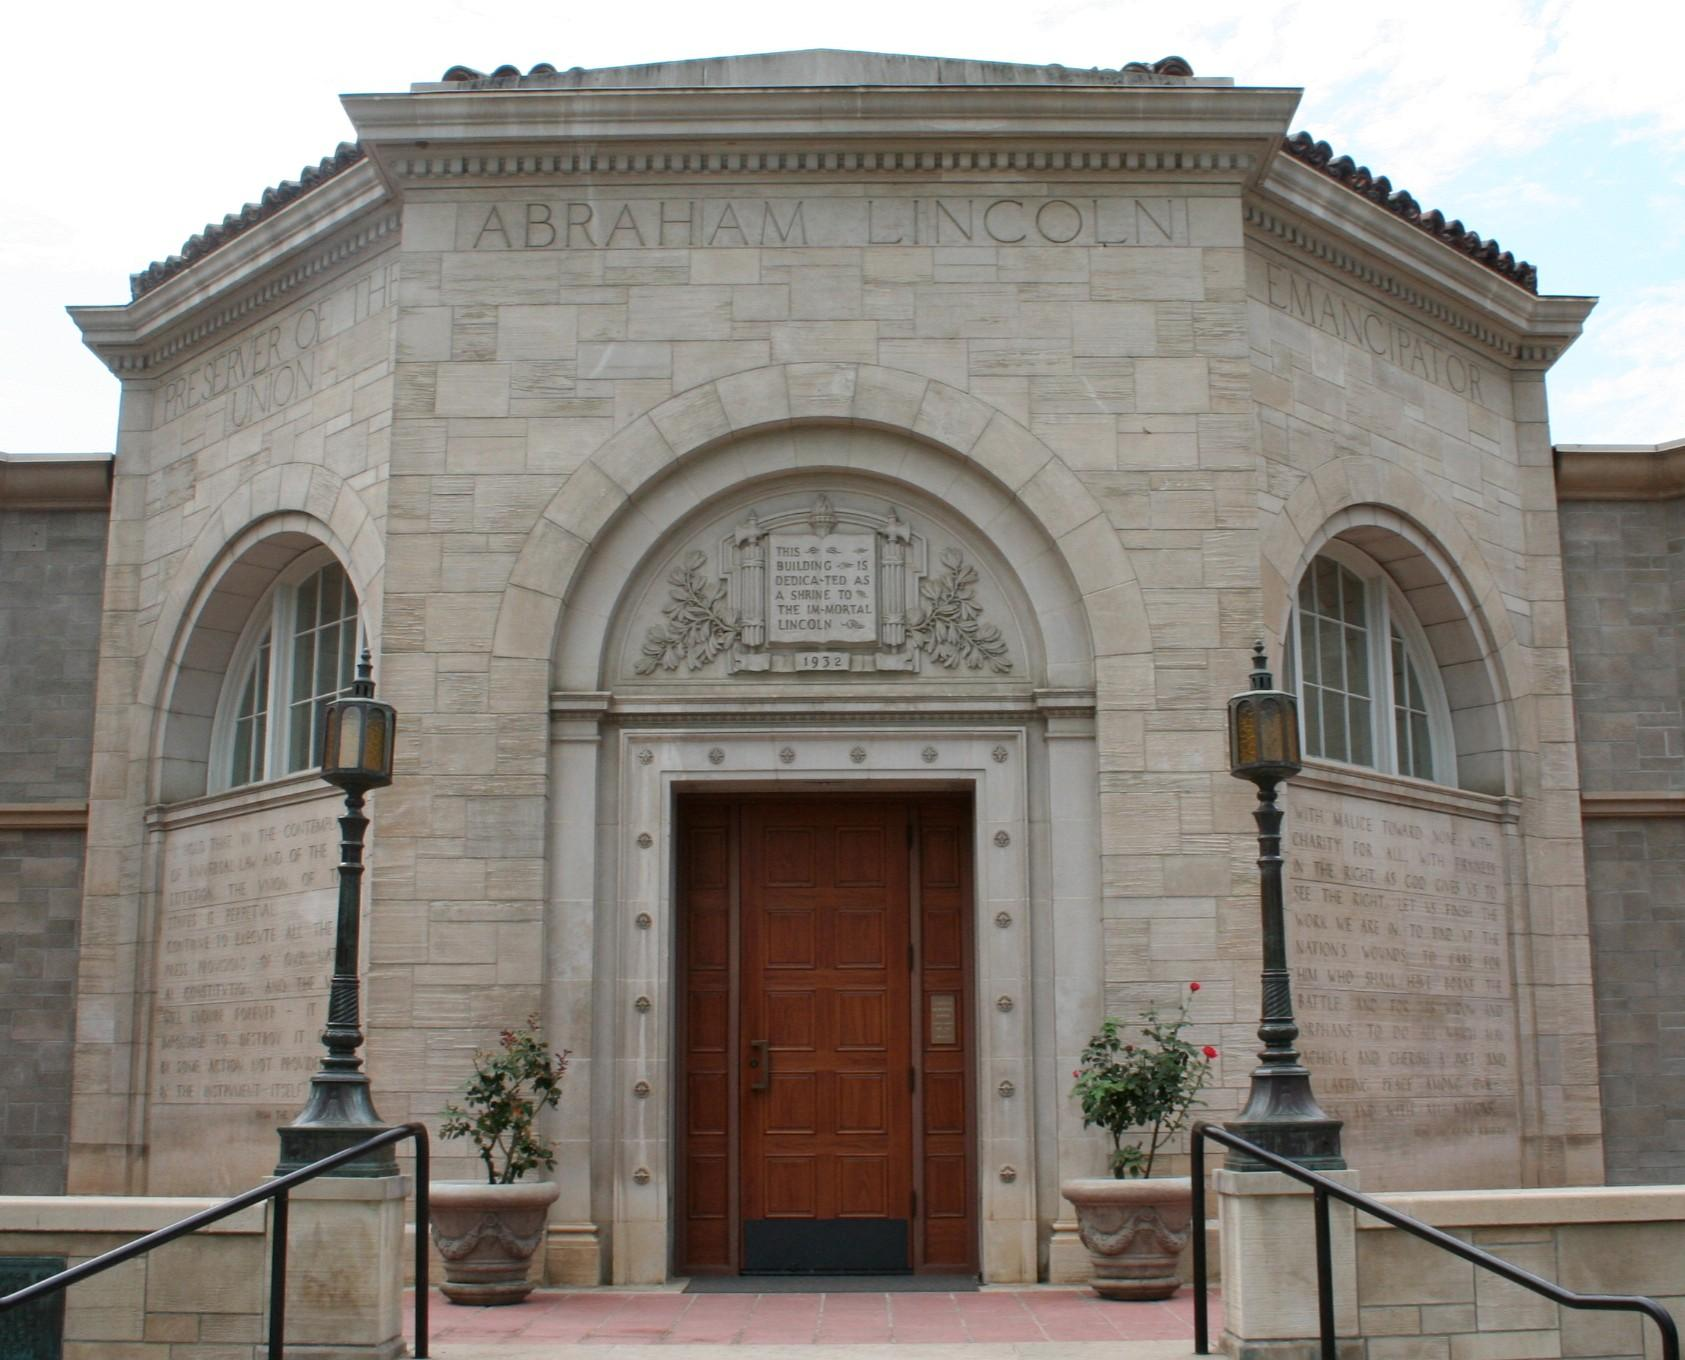 The front of the Lincoln Shrine in Redlands, California.